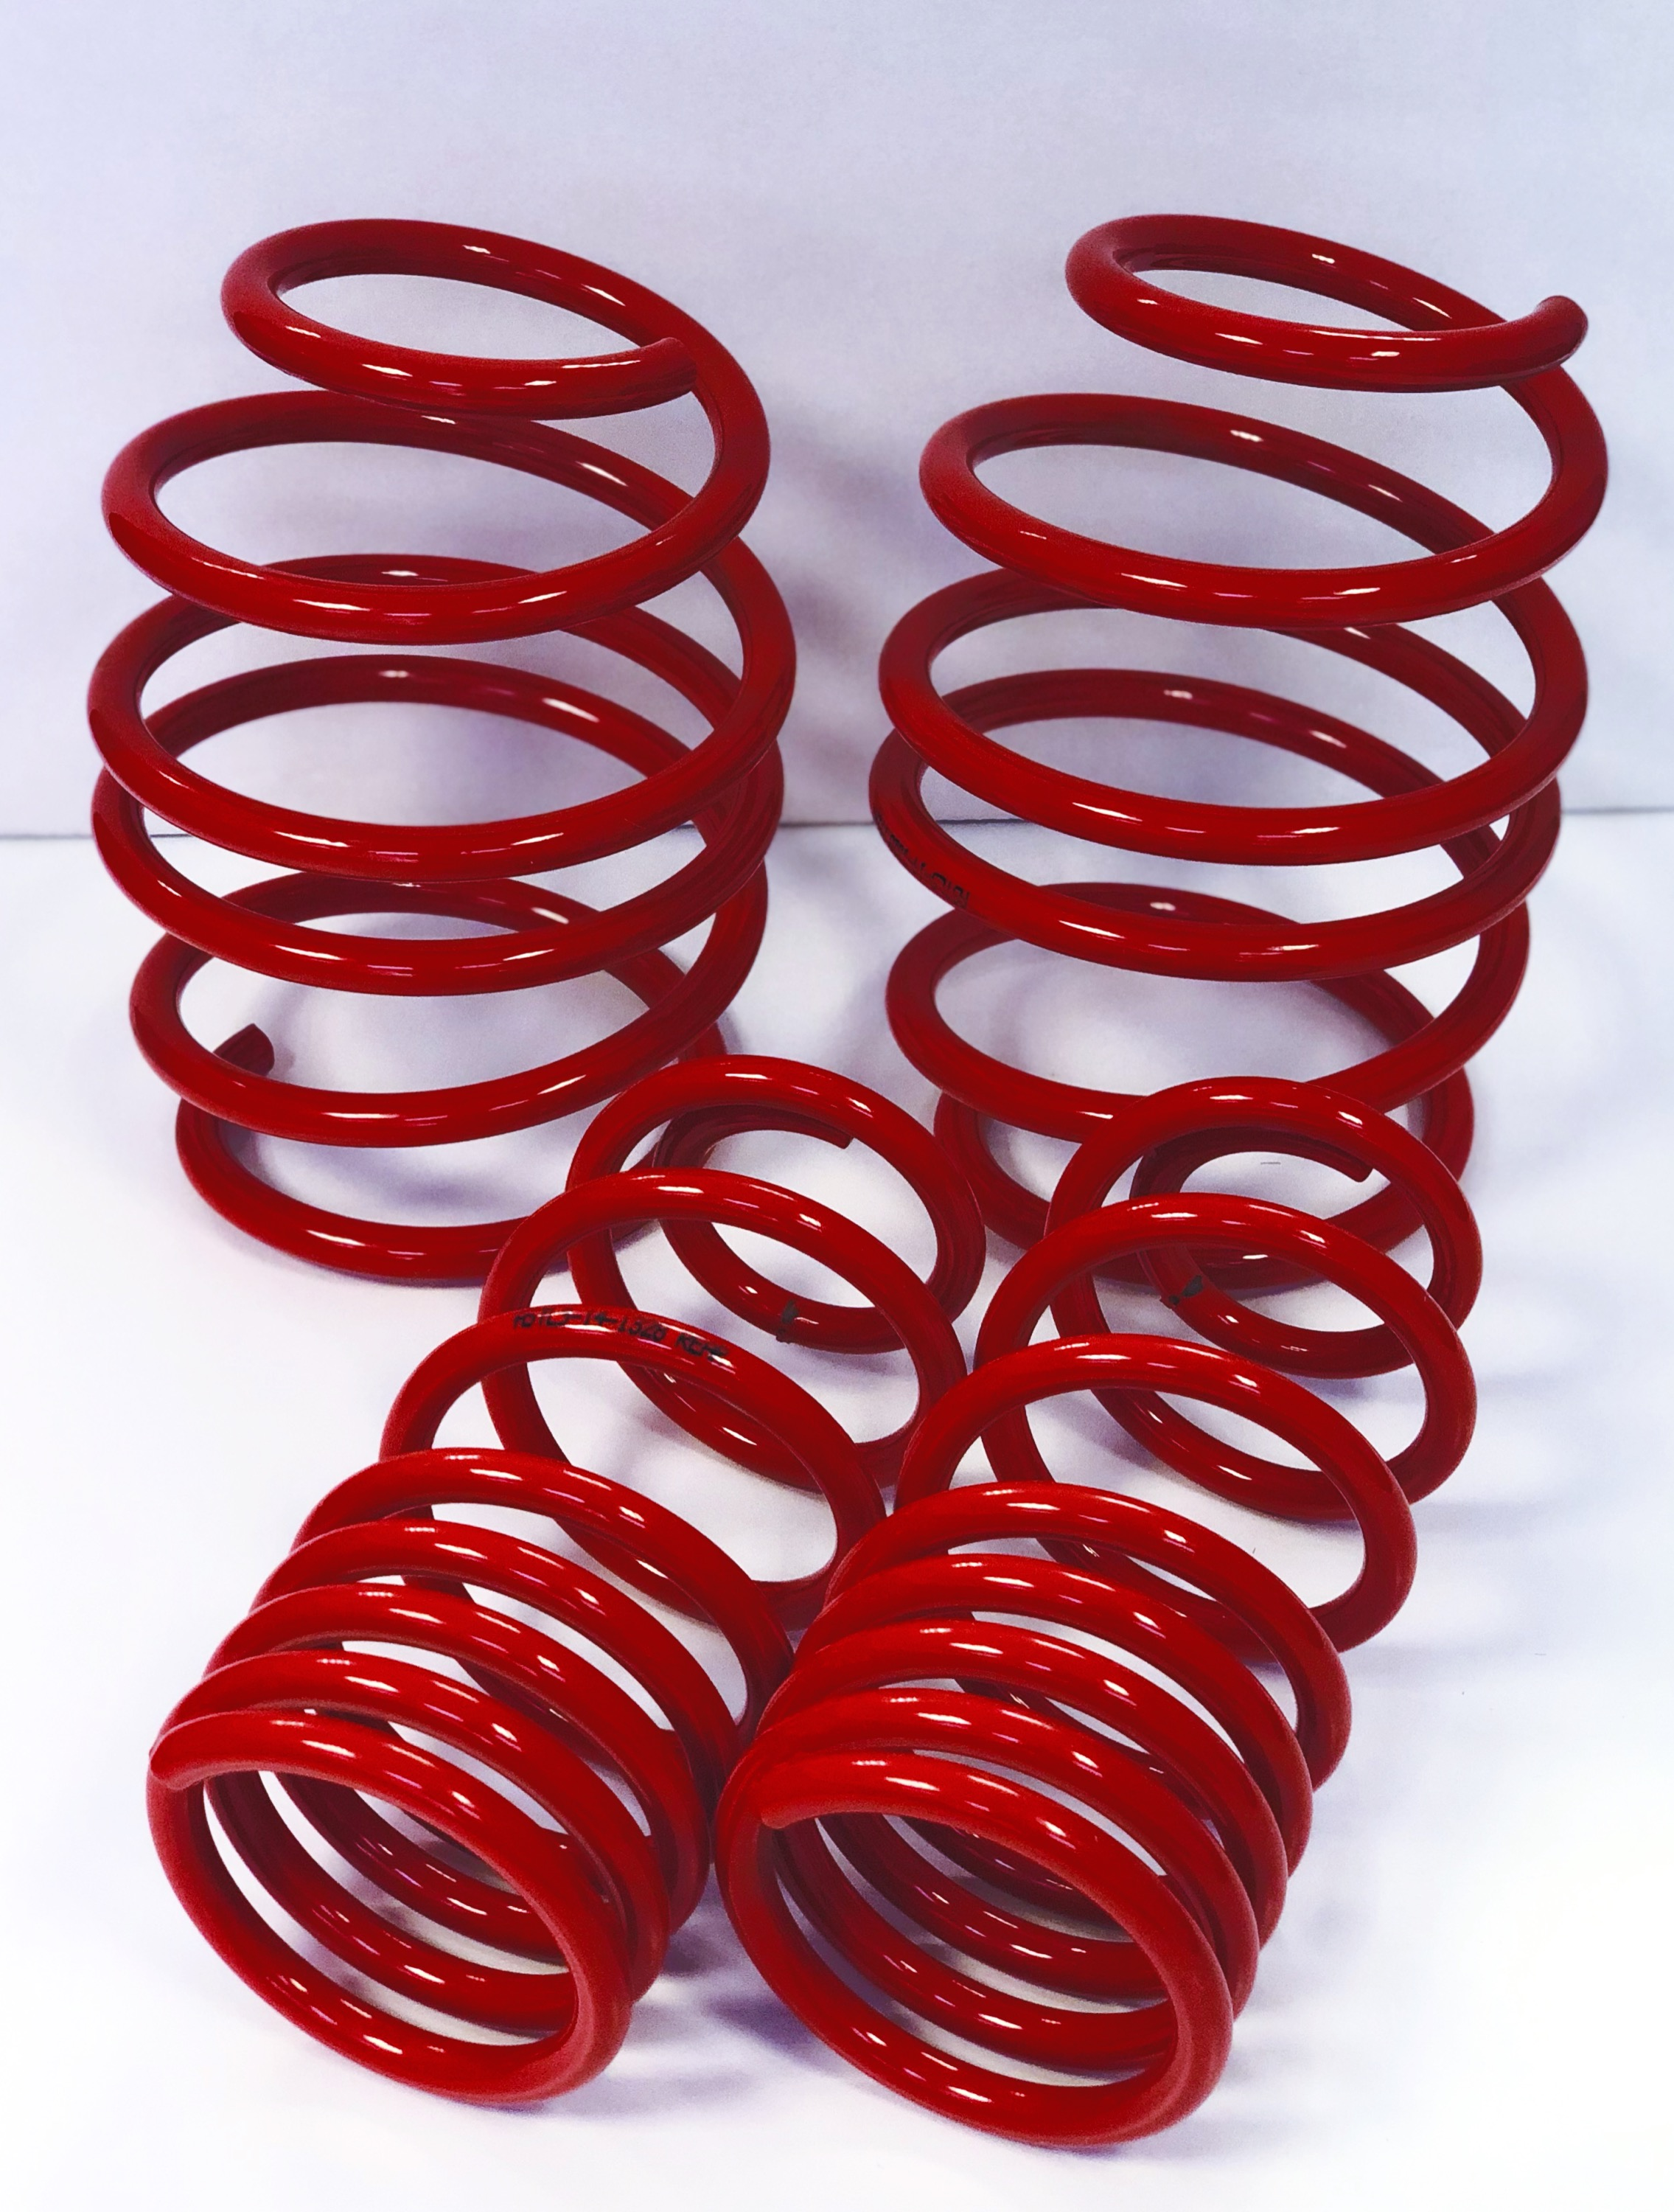 Vauxhall ASTRA AST Suspension Lowering Springs 20MM